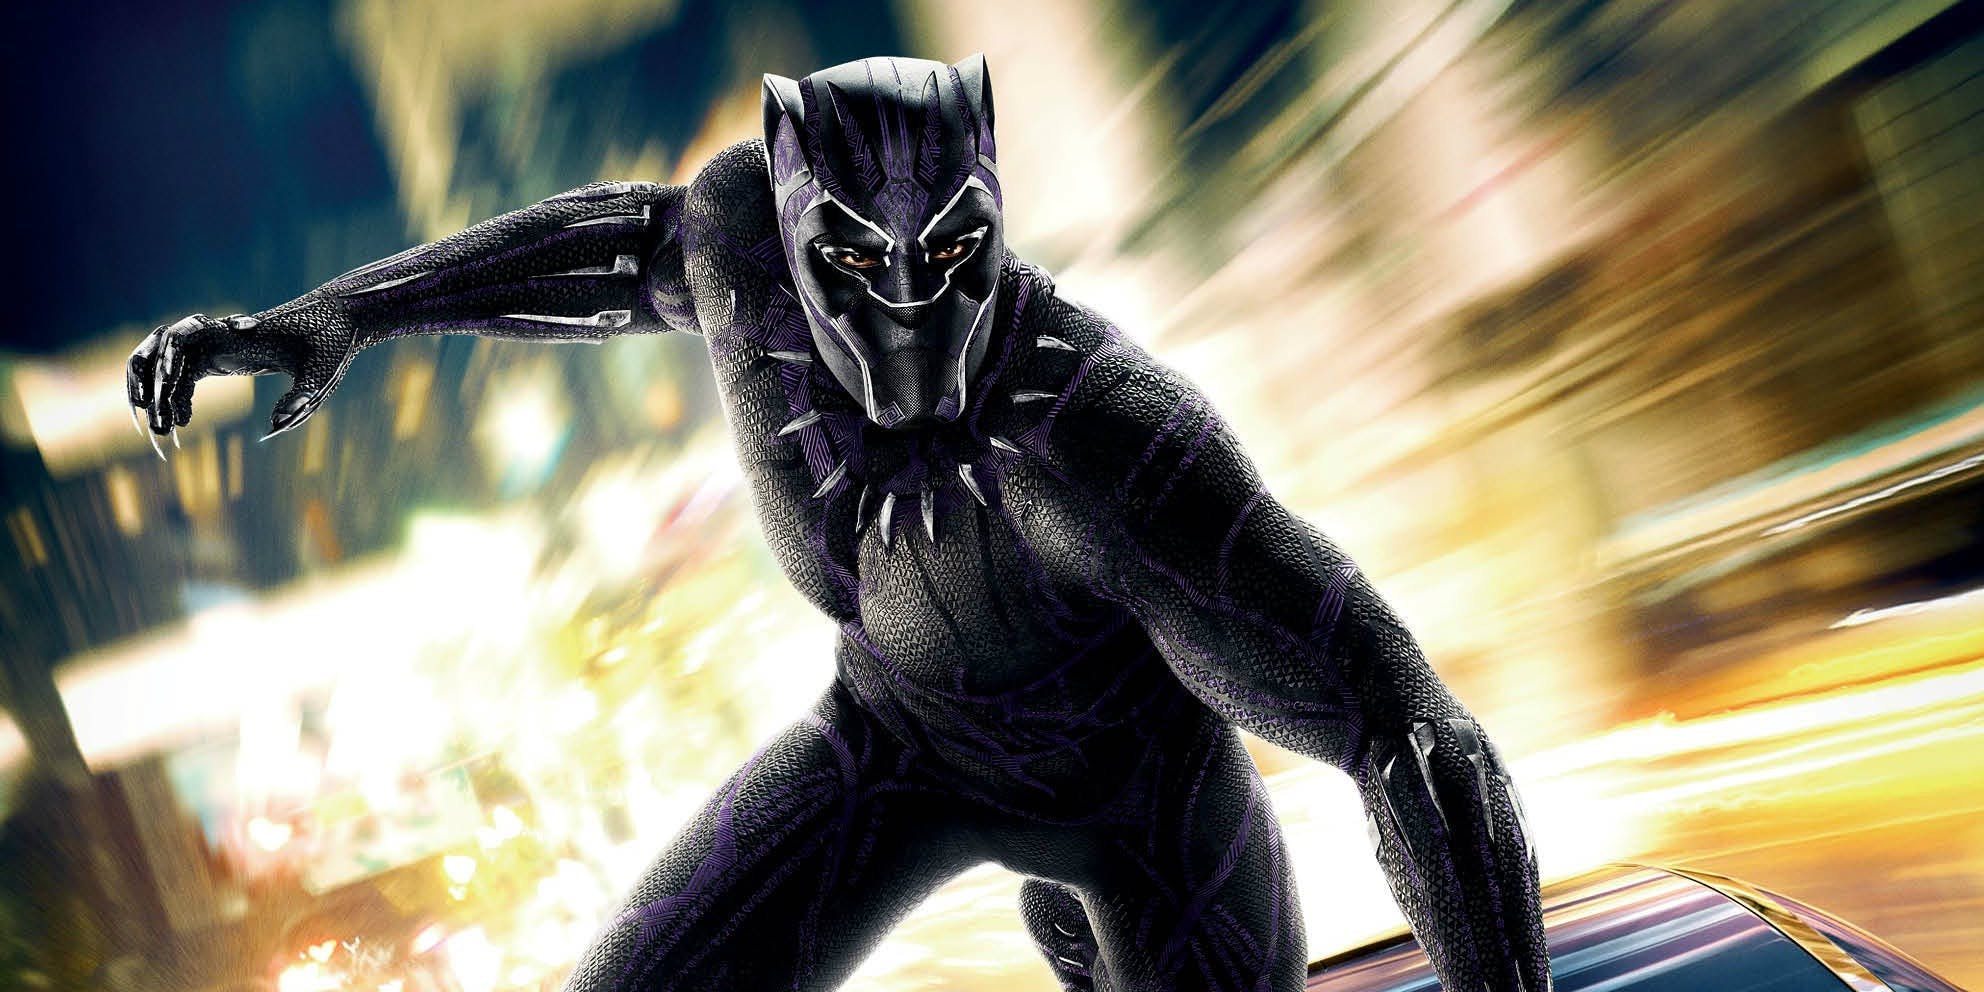 Black-Panther-Poster-Cropped